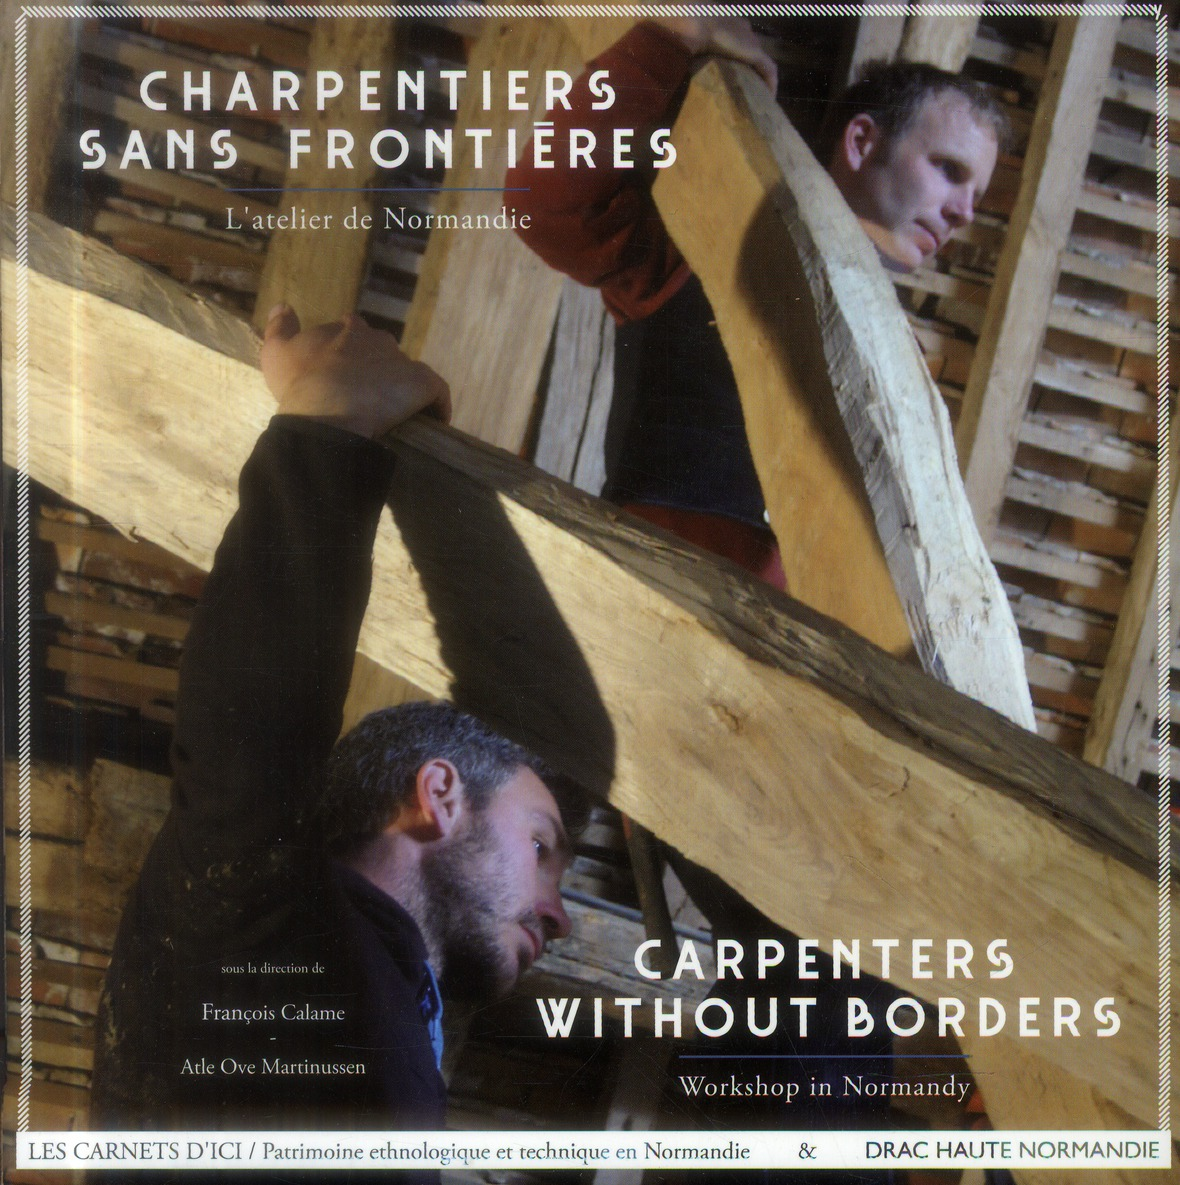 Charpentiers sans frontières Carpenters without borders CALAME FRANCOIS Centre régional de culture ethnologique et technique de Basse-Normandie